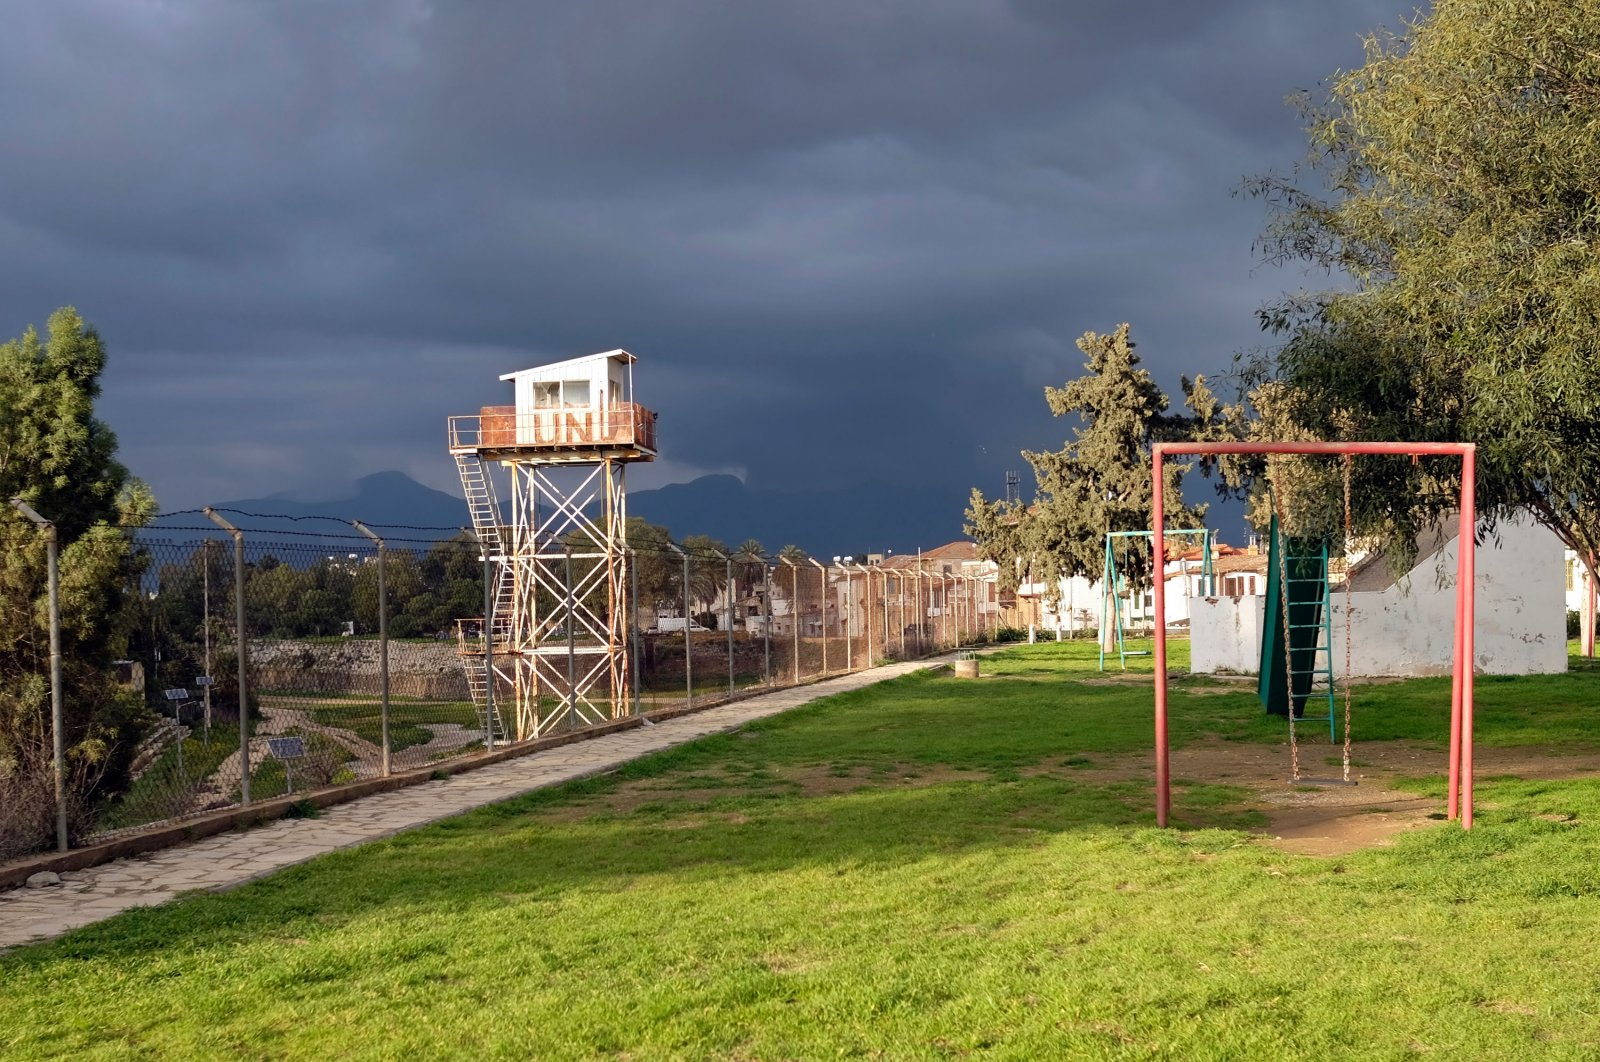 """United Nations guard tower in the """"Green Line"""" between the North and South of Nicosia, Cyprus next to a playground, Feb. 20, 2020. (Shutterstock File Photo)"""